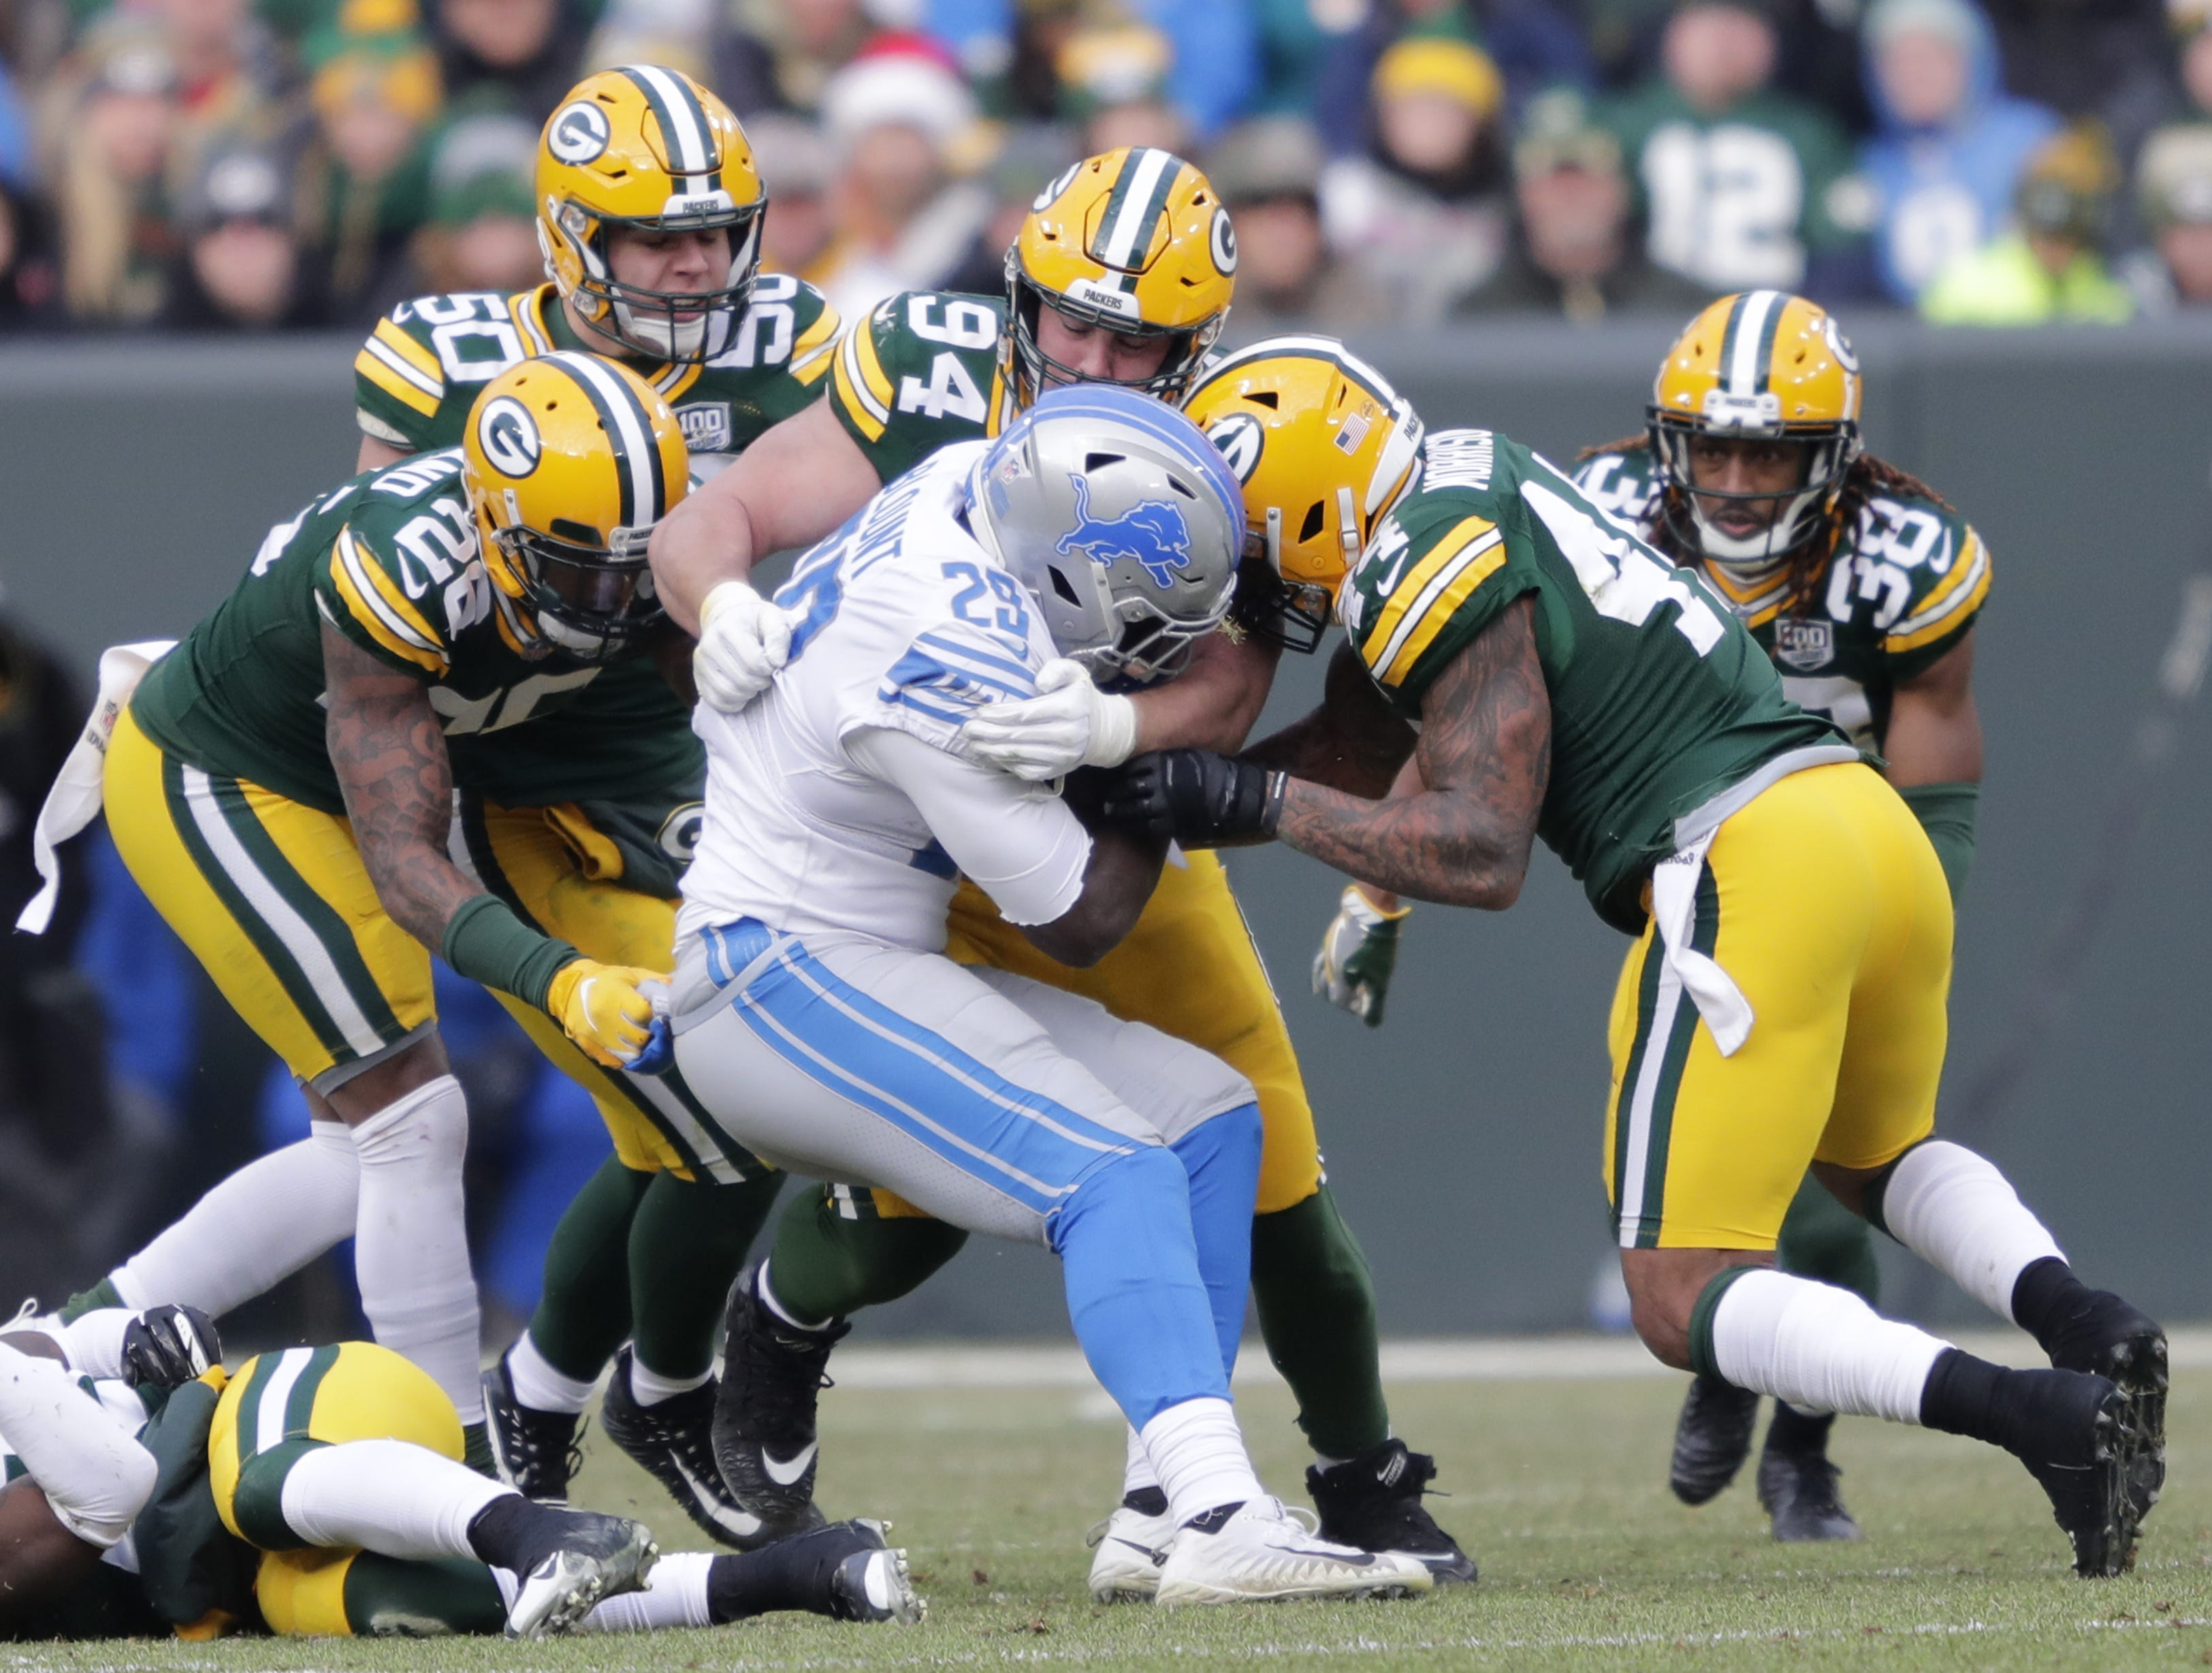 Detroit Lions running back LeGarrette Blount (29) is brought down by Packers defenders during the third quarter Sunday, December 30, 2018, at Lambeau Field in Green Bay, Wis.  Dan Powers/USA TODAY NETWORK-Wisconsin